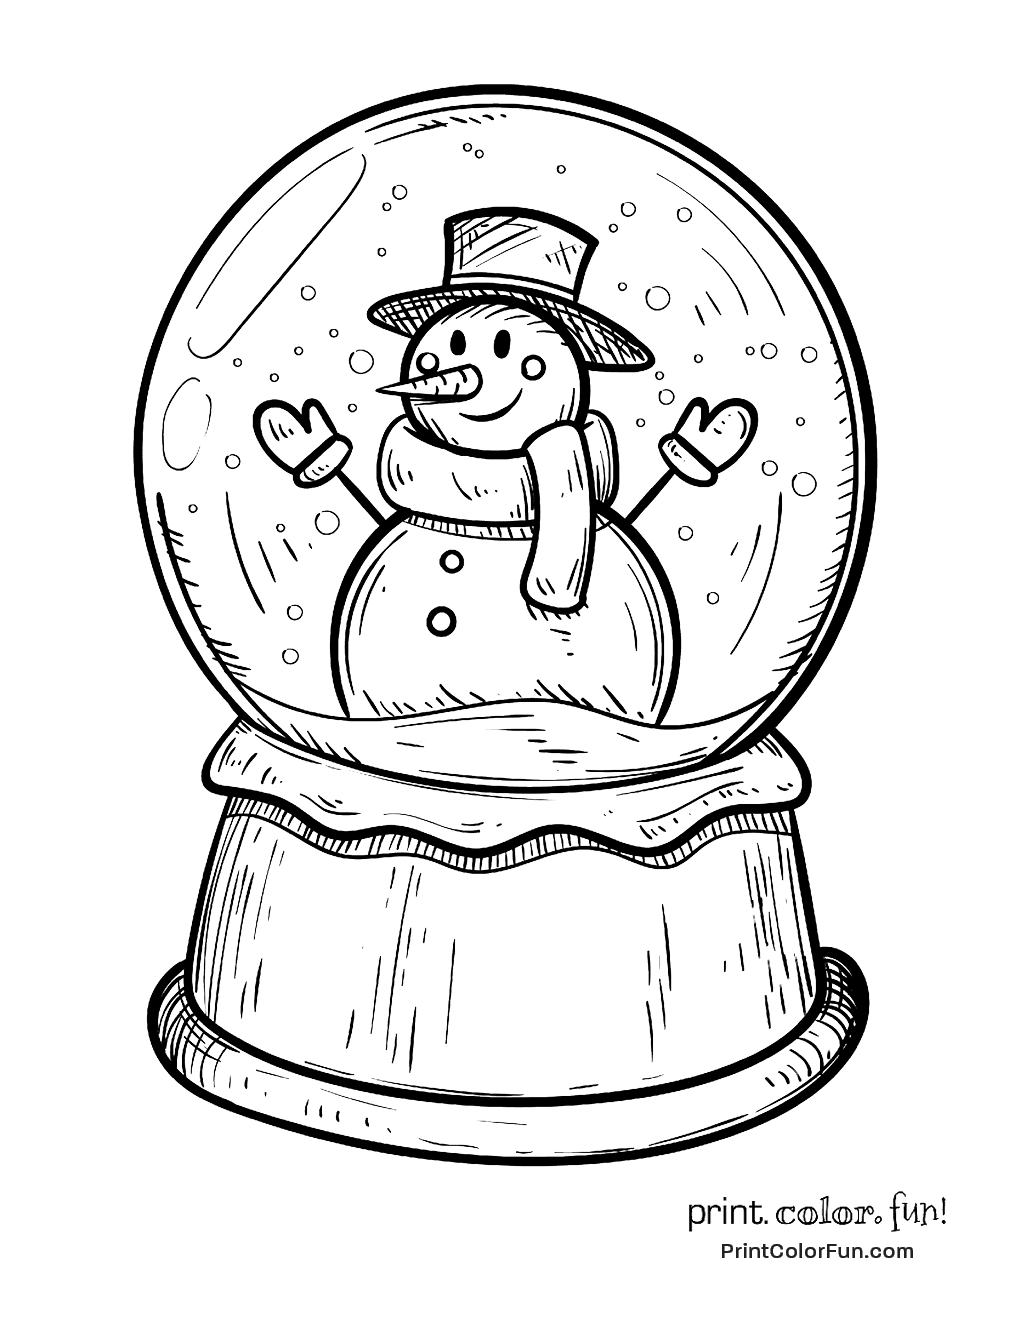 Winter Snow Globe With Snowman Coloring Page Print